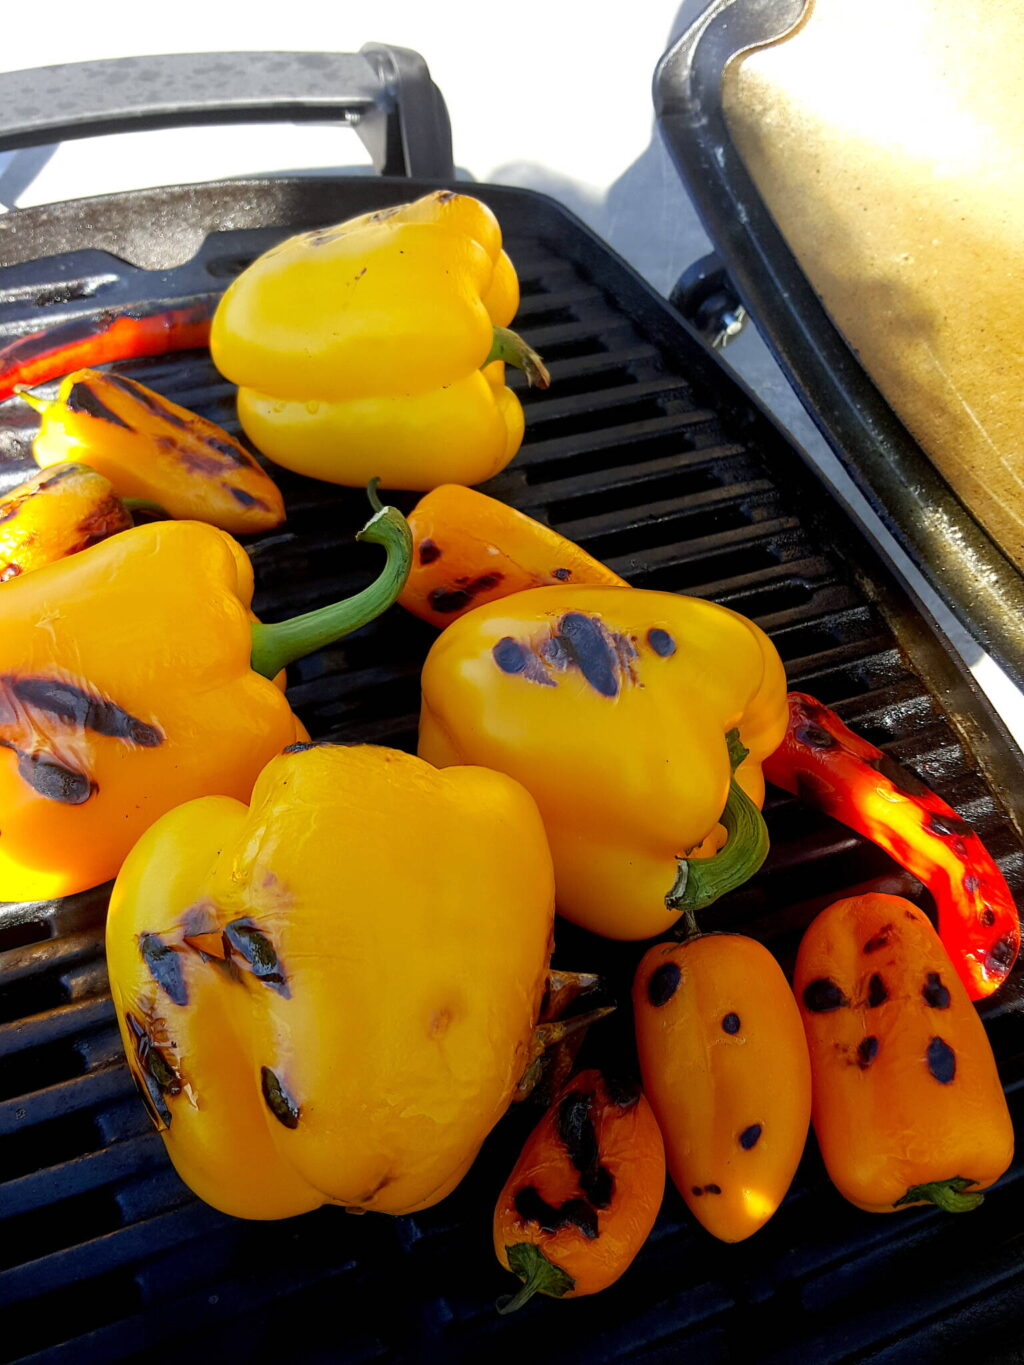 Grilling peppers until charred